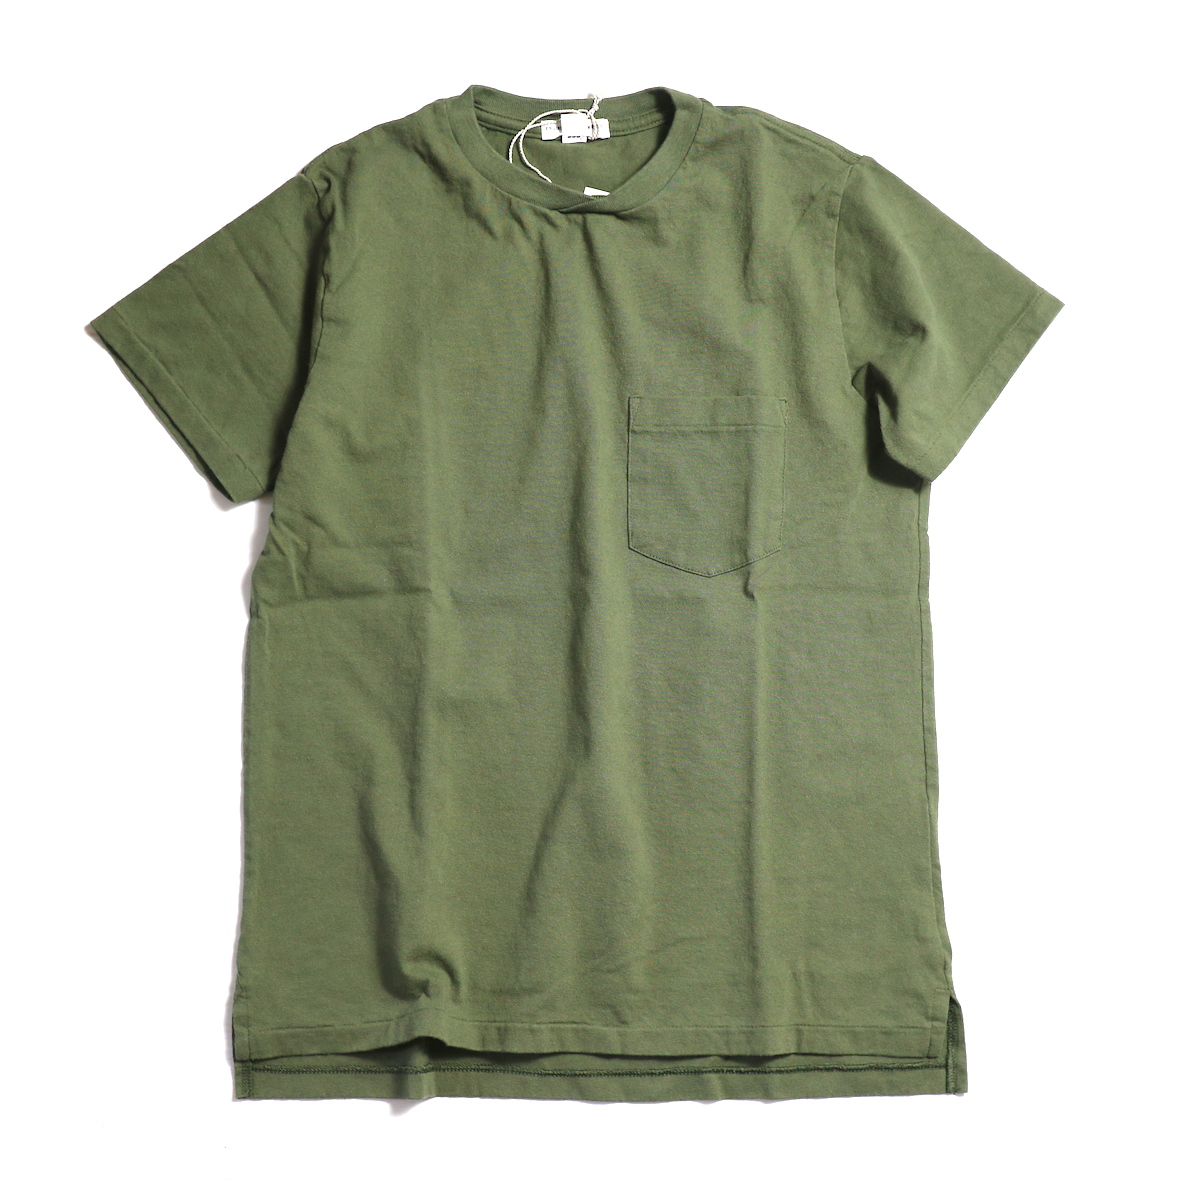 "ENGINEERED GARMENTS WORKADAY / ""Crossover Neck Pocket Tee"" -Olive"